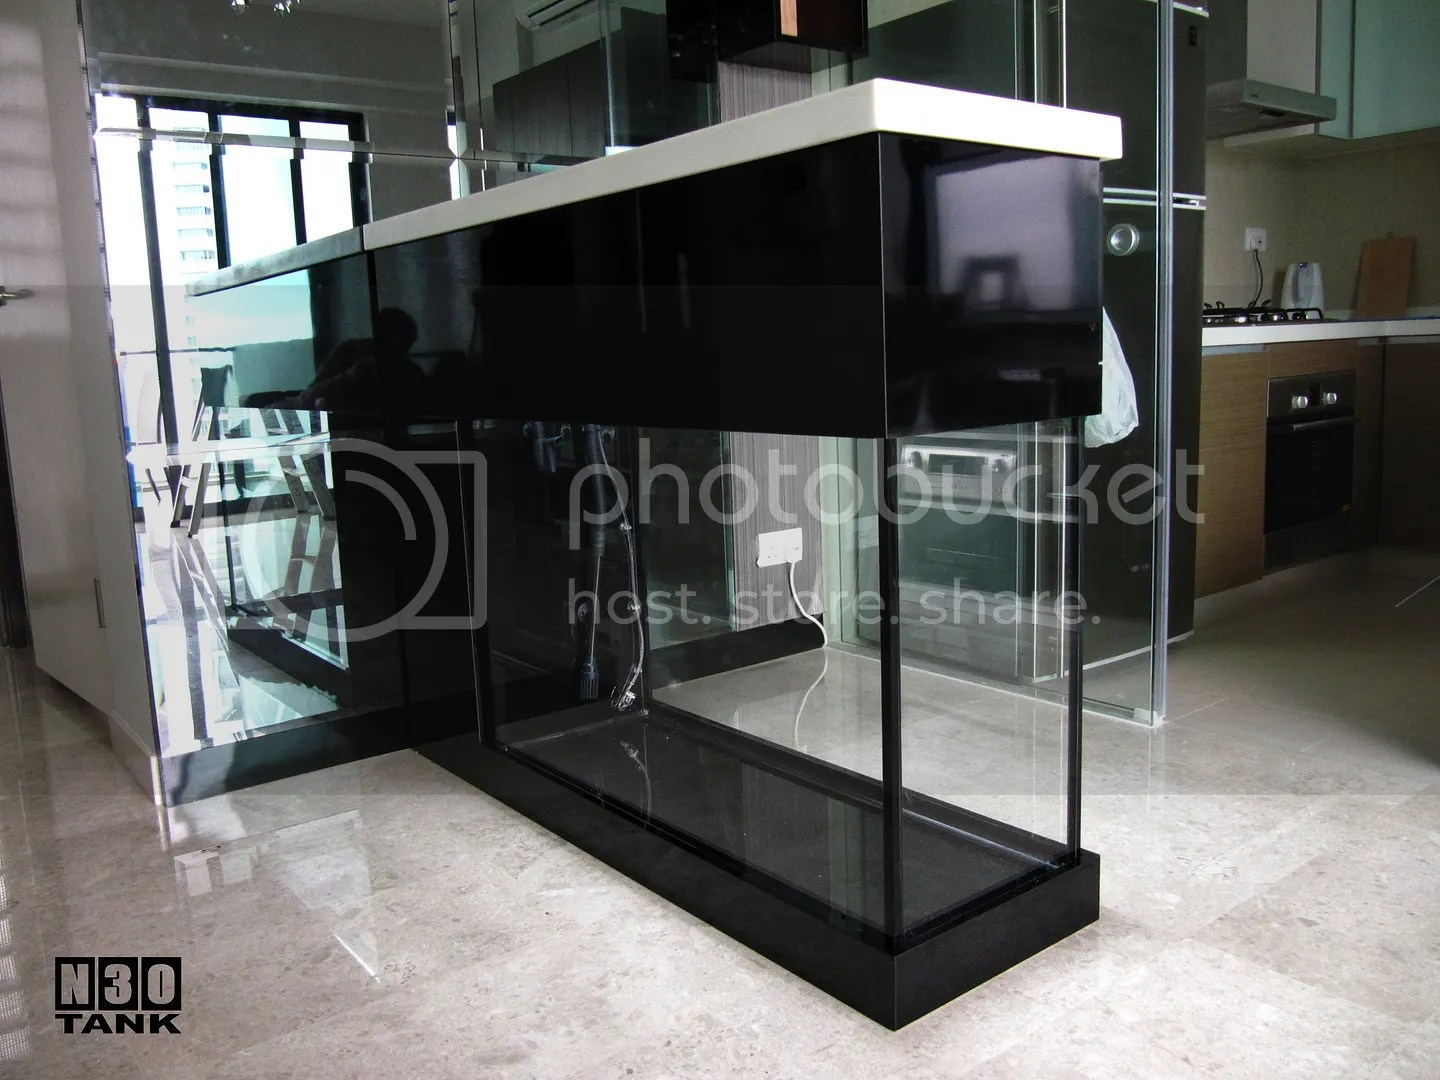 N30 Tank 5ft Long Bar Counter Top Aquarium Tank Photo By Weeyang19 Photobucket